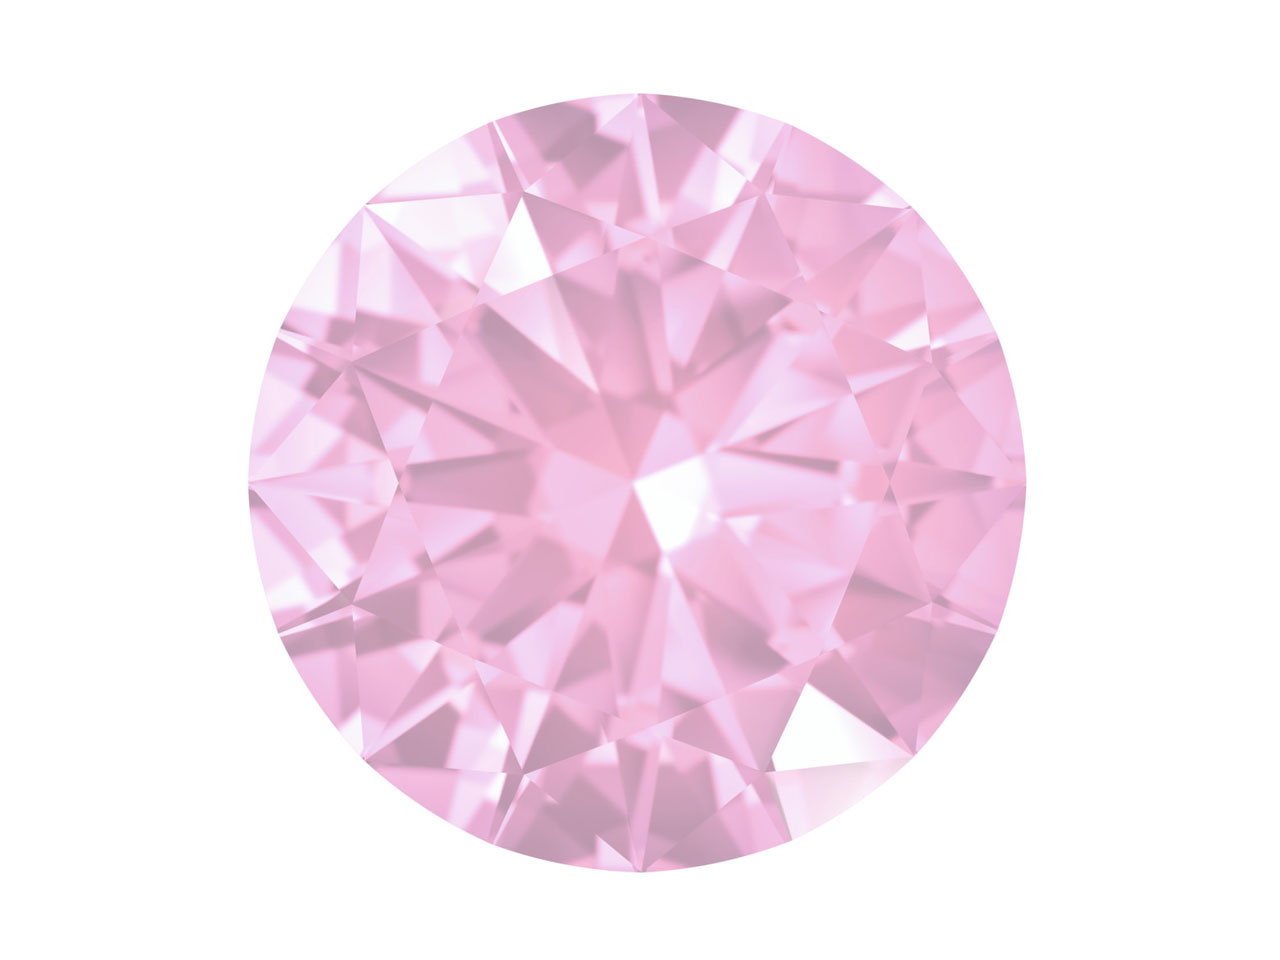 Swarovski Gemstones Pink Sapphire  Round Brilliant Cut 1.25mm Very    Light Pink